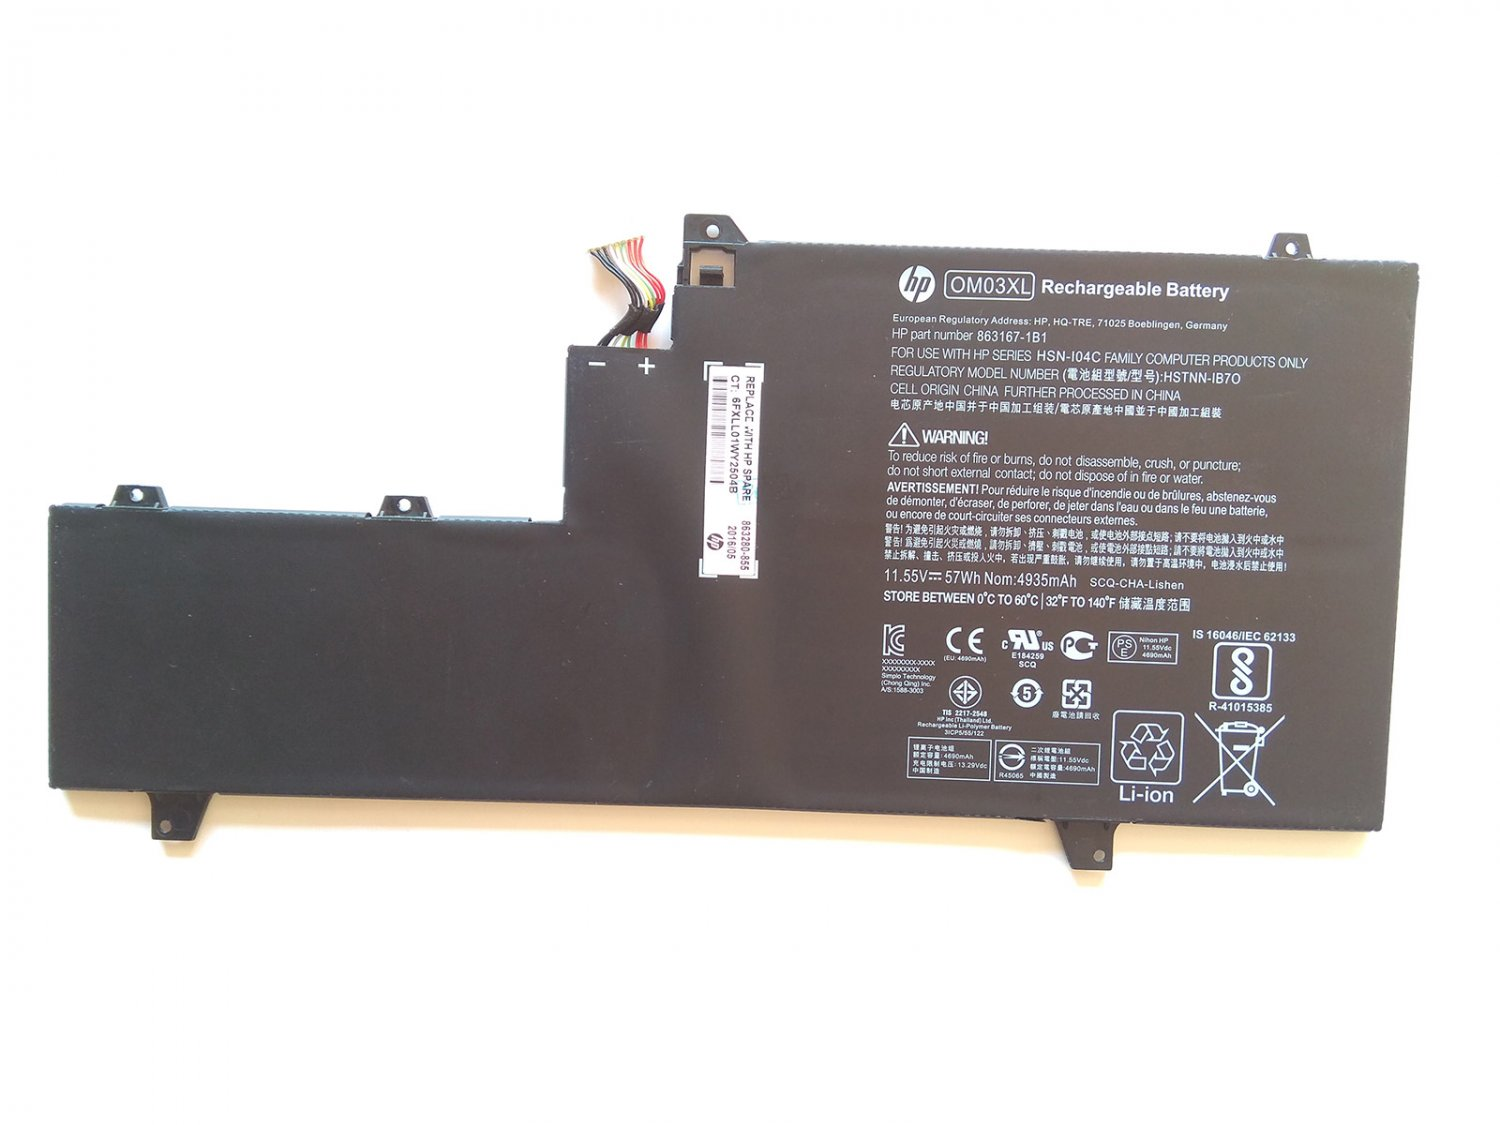 HP OM03XL Battery For HP EliteBook X360 1030 G2 1GY29PA 1GY30PA 1GY31PA